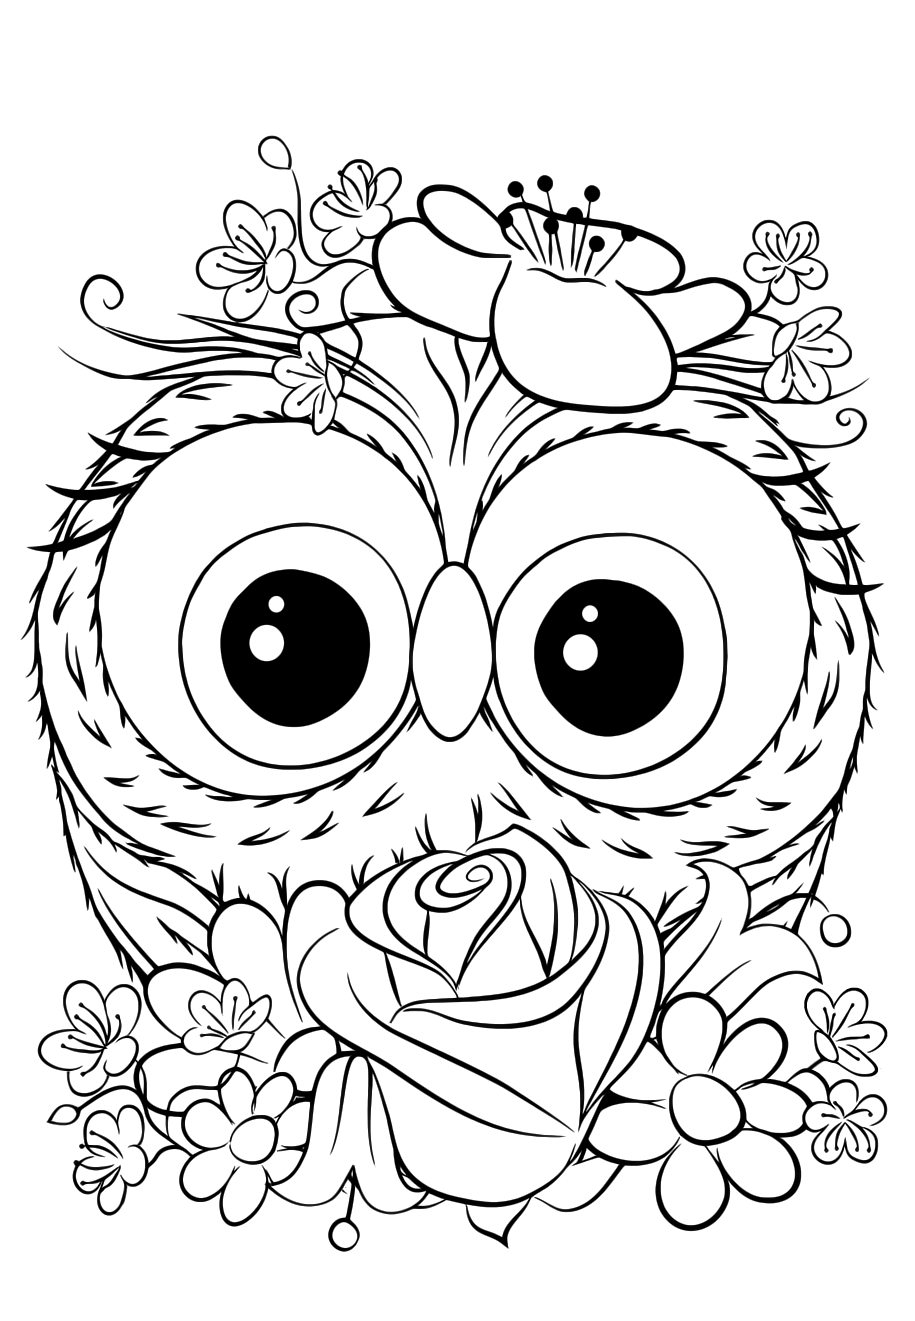 Cutie Owl - Coloring pages for you